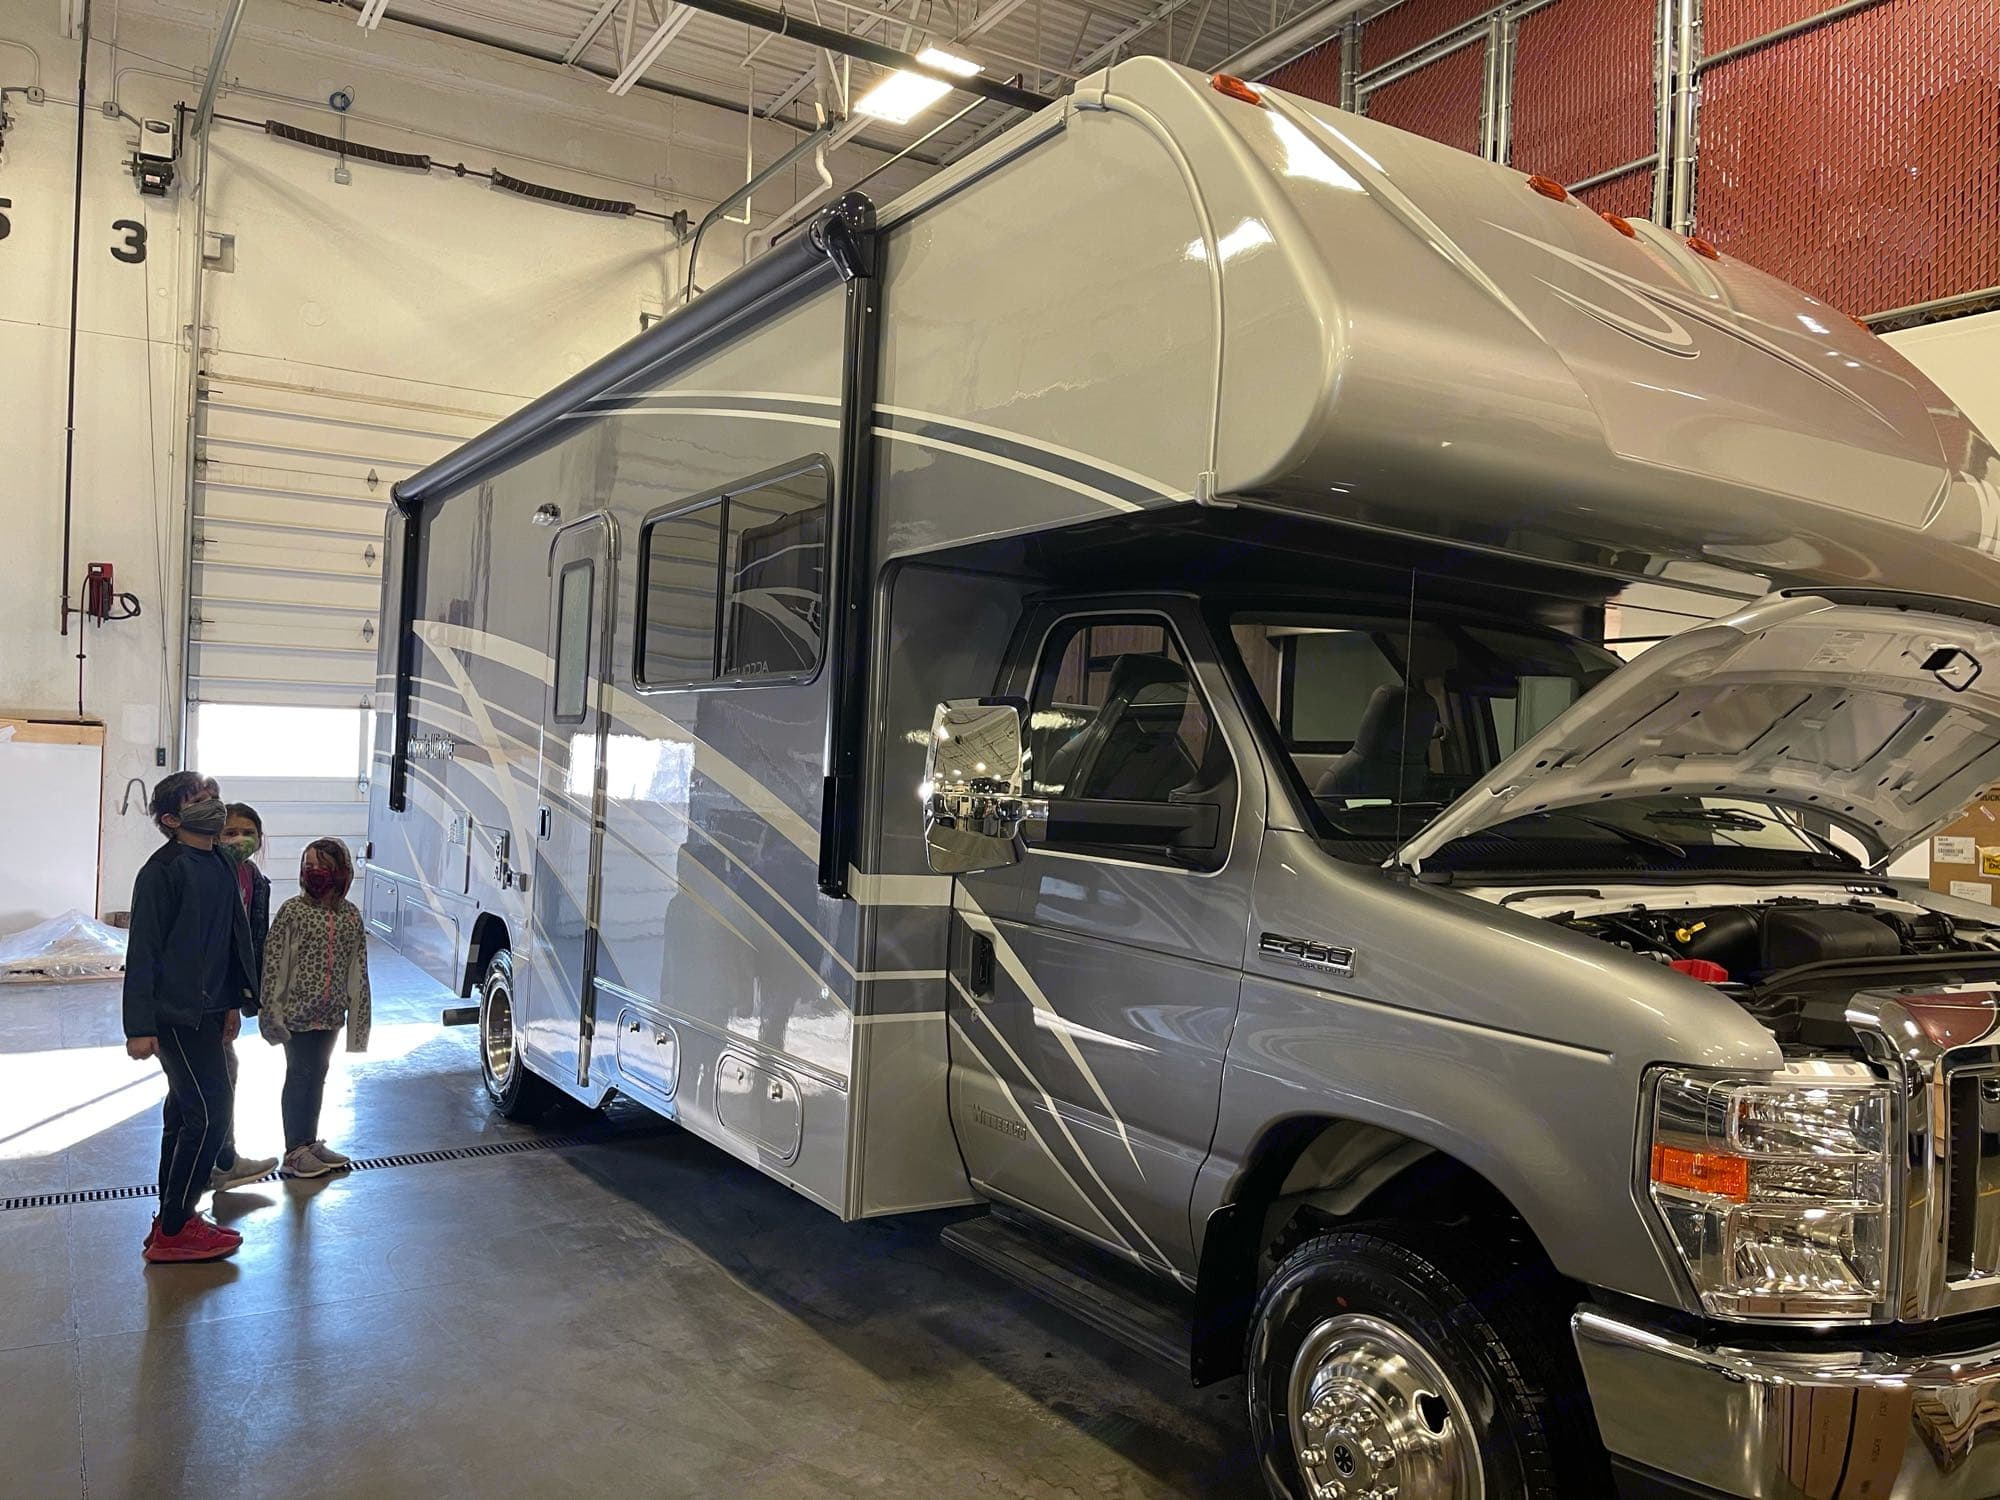 Fresh off the line - upgraded paint, automatic leveling jacks and everything!. Winnebago Minnie Winnie 26T (the new floor plan!) 2021